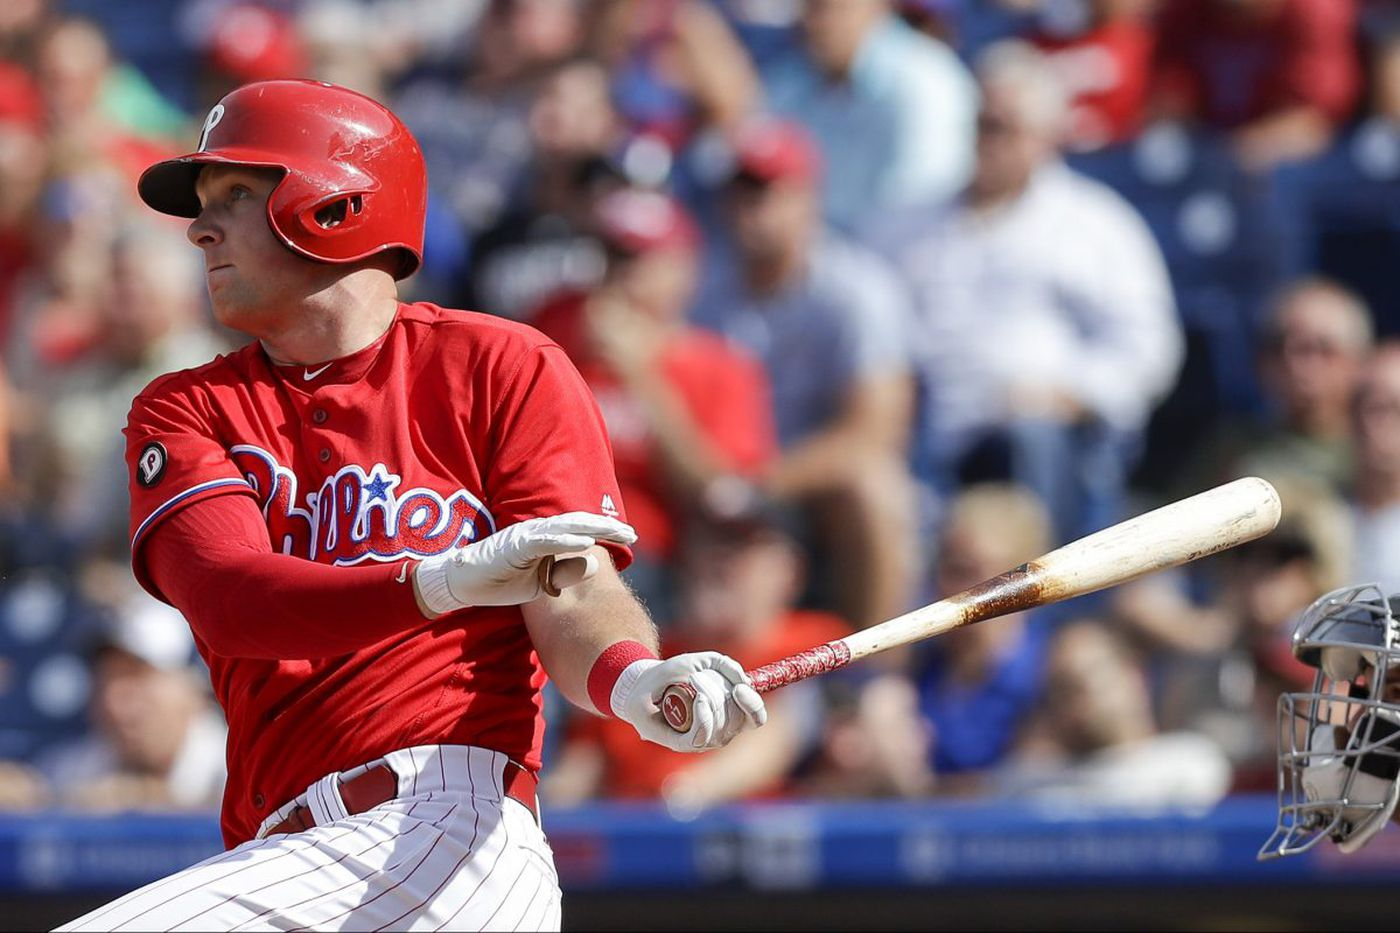 Phillies spring training roster: A closer look at the players